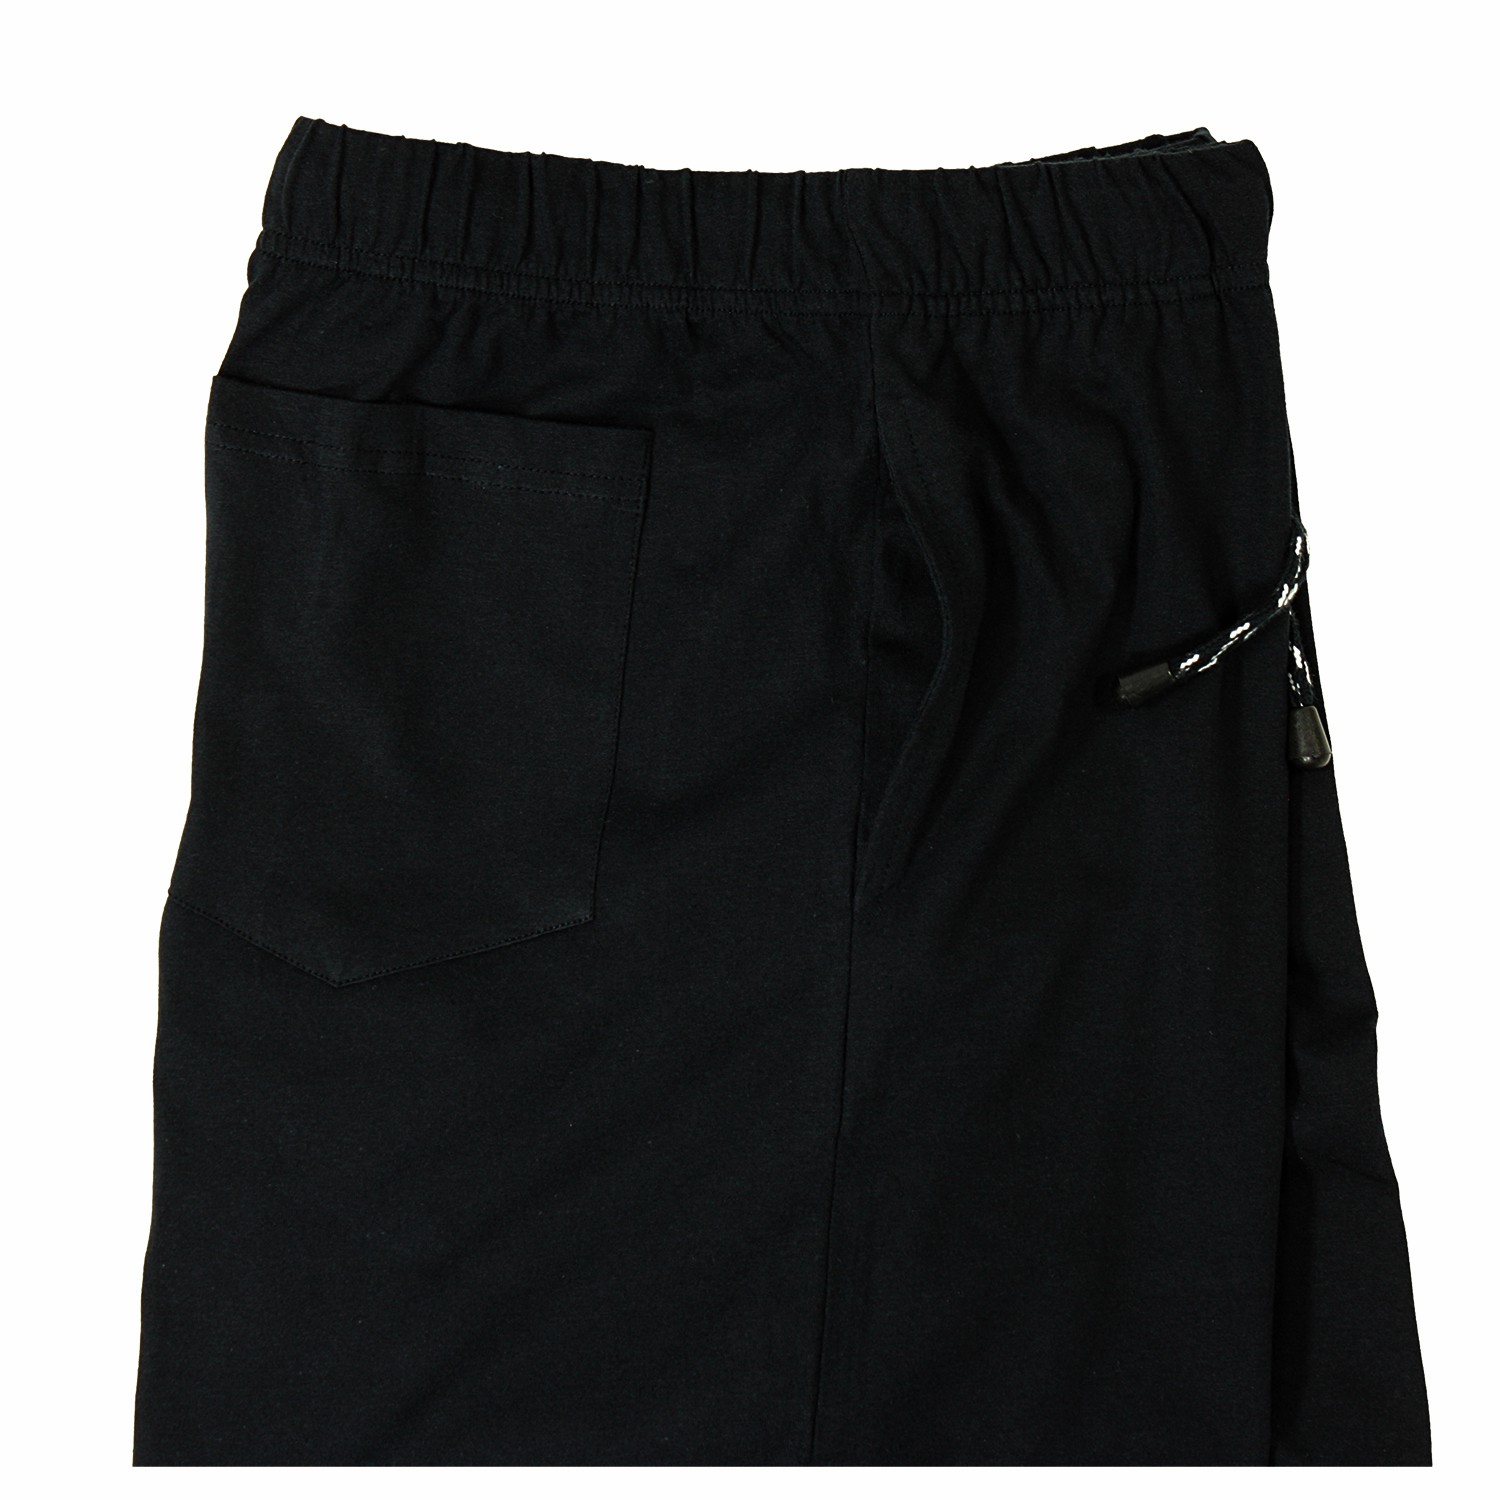 Detail Image to Long pyjama pants in black by ADAMO in plus sizes up to 9XL